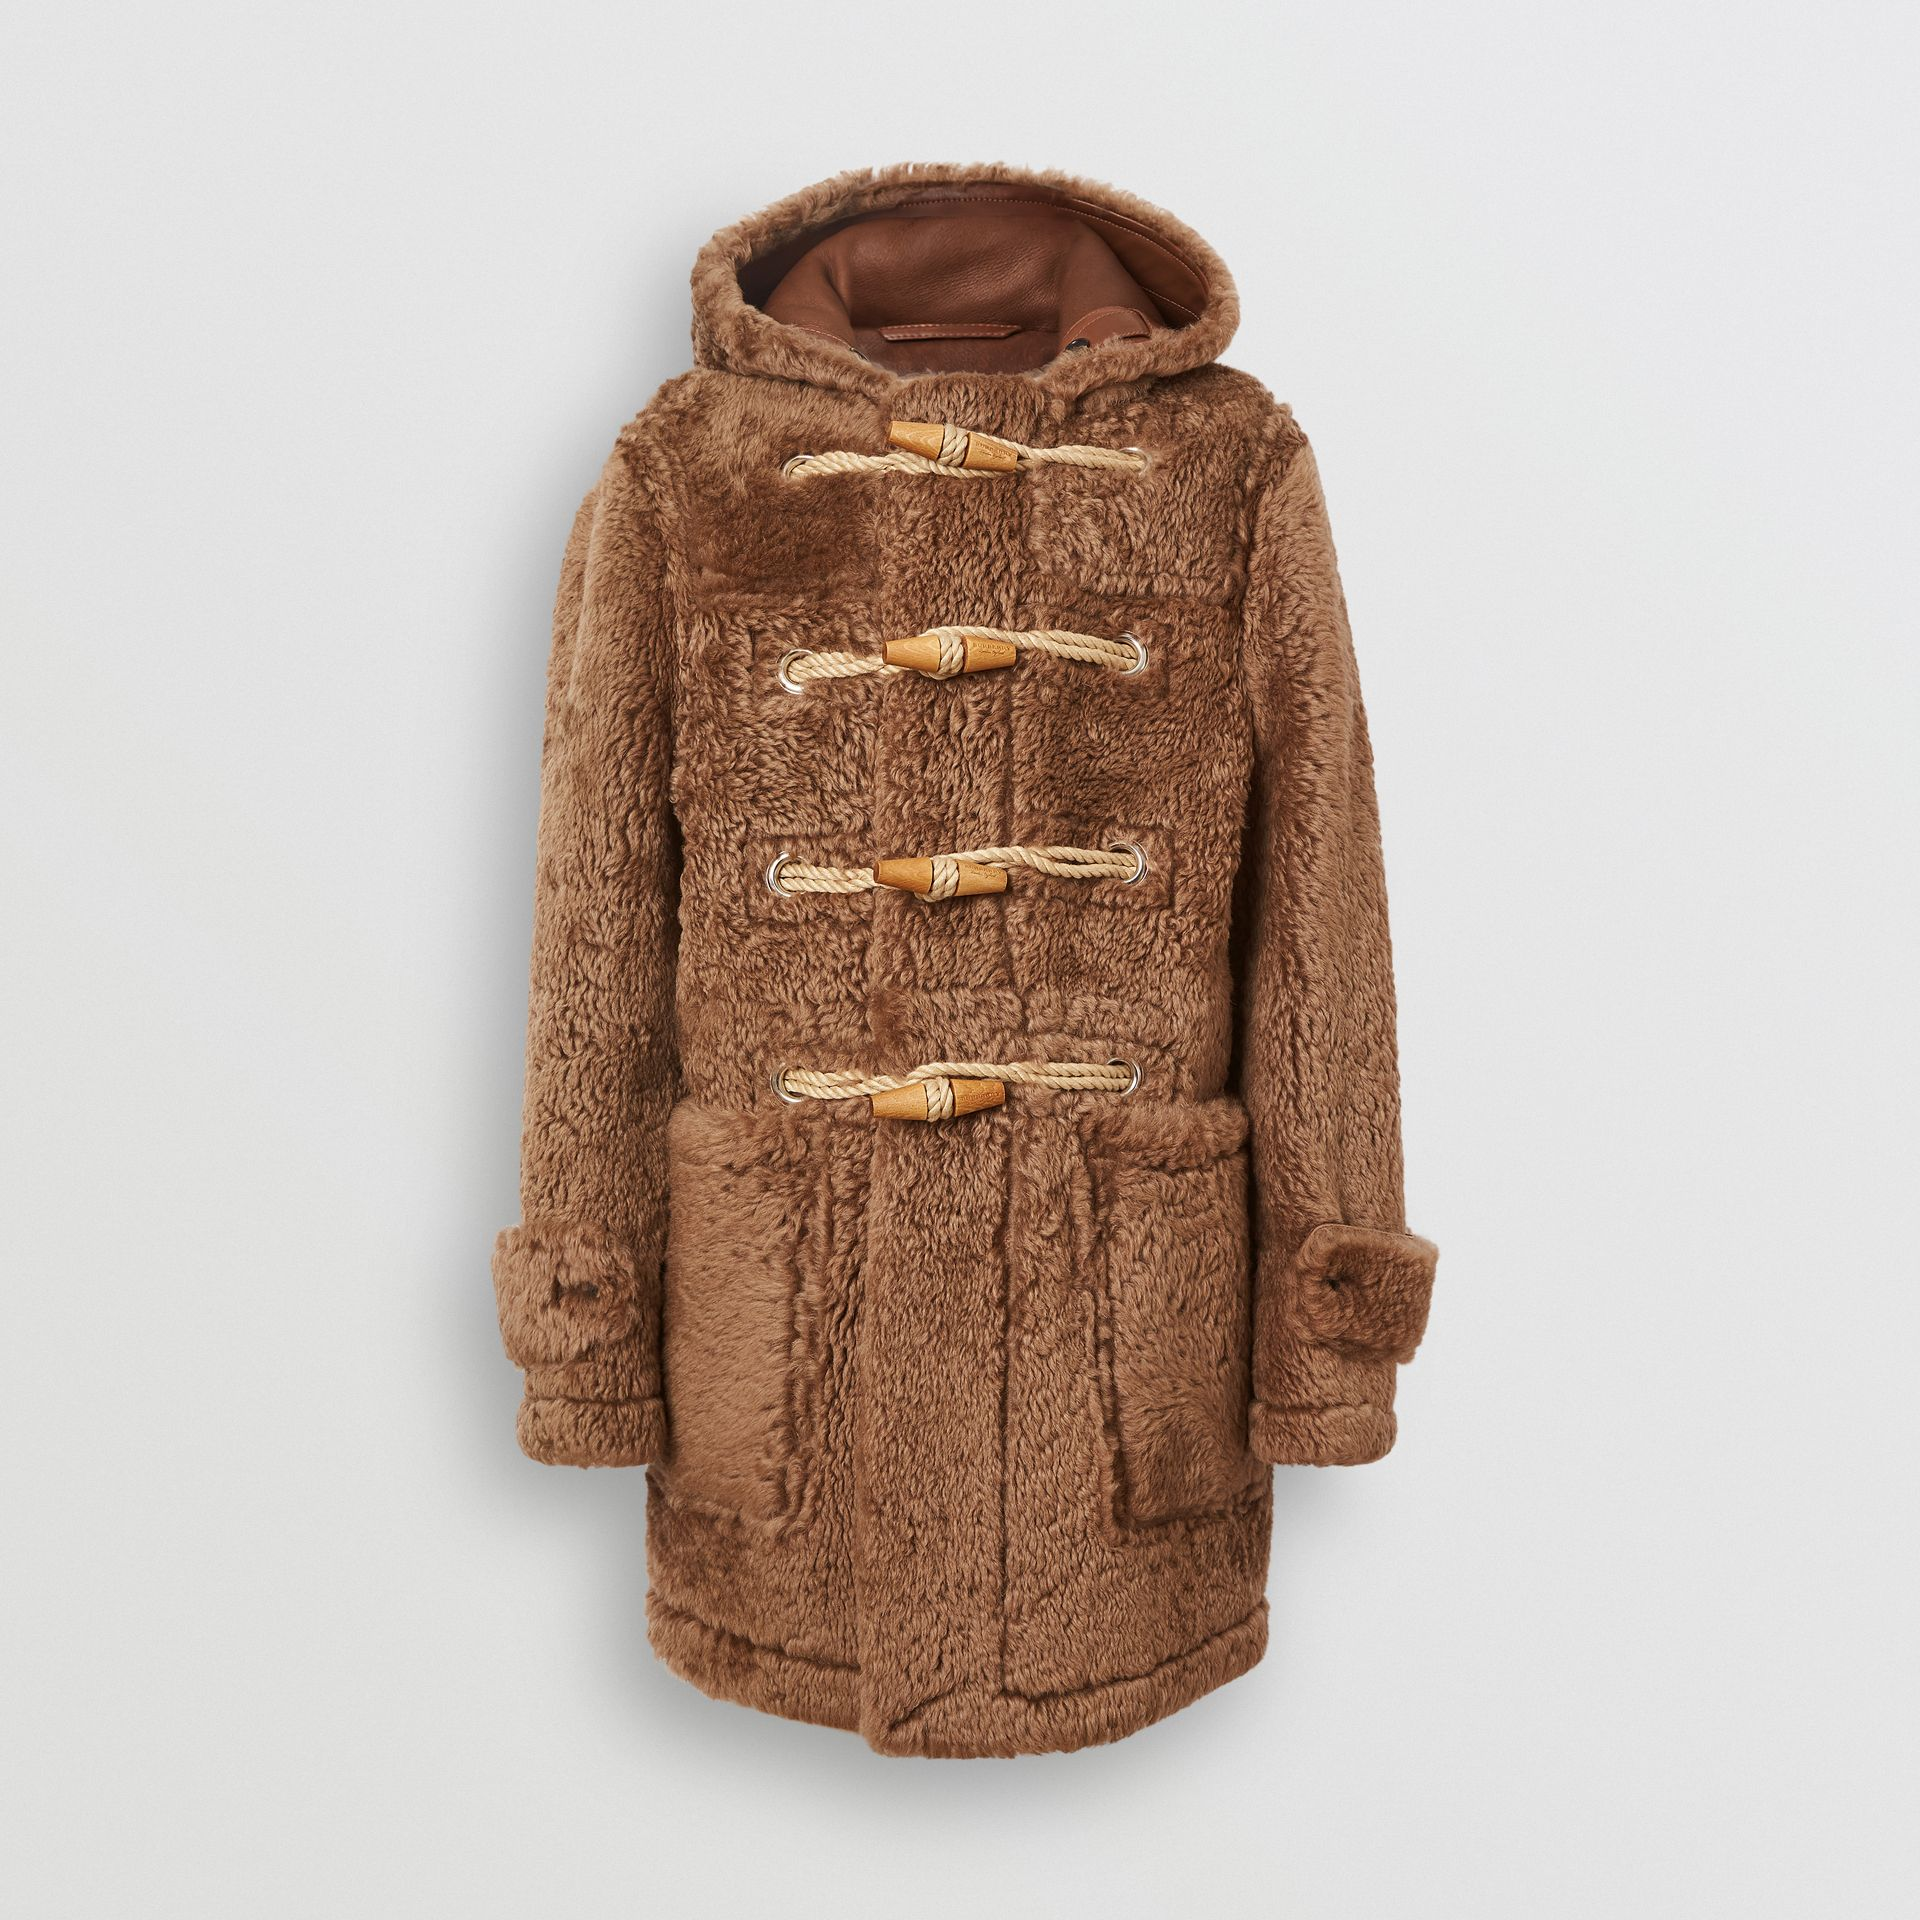 Shearling Duffle Coat in Taupe - Men | Burberry United Kingdom - gallery image 3